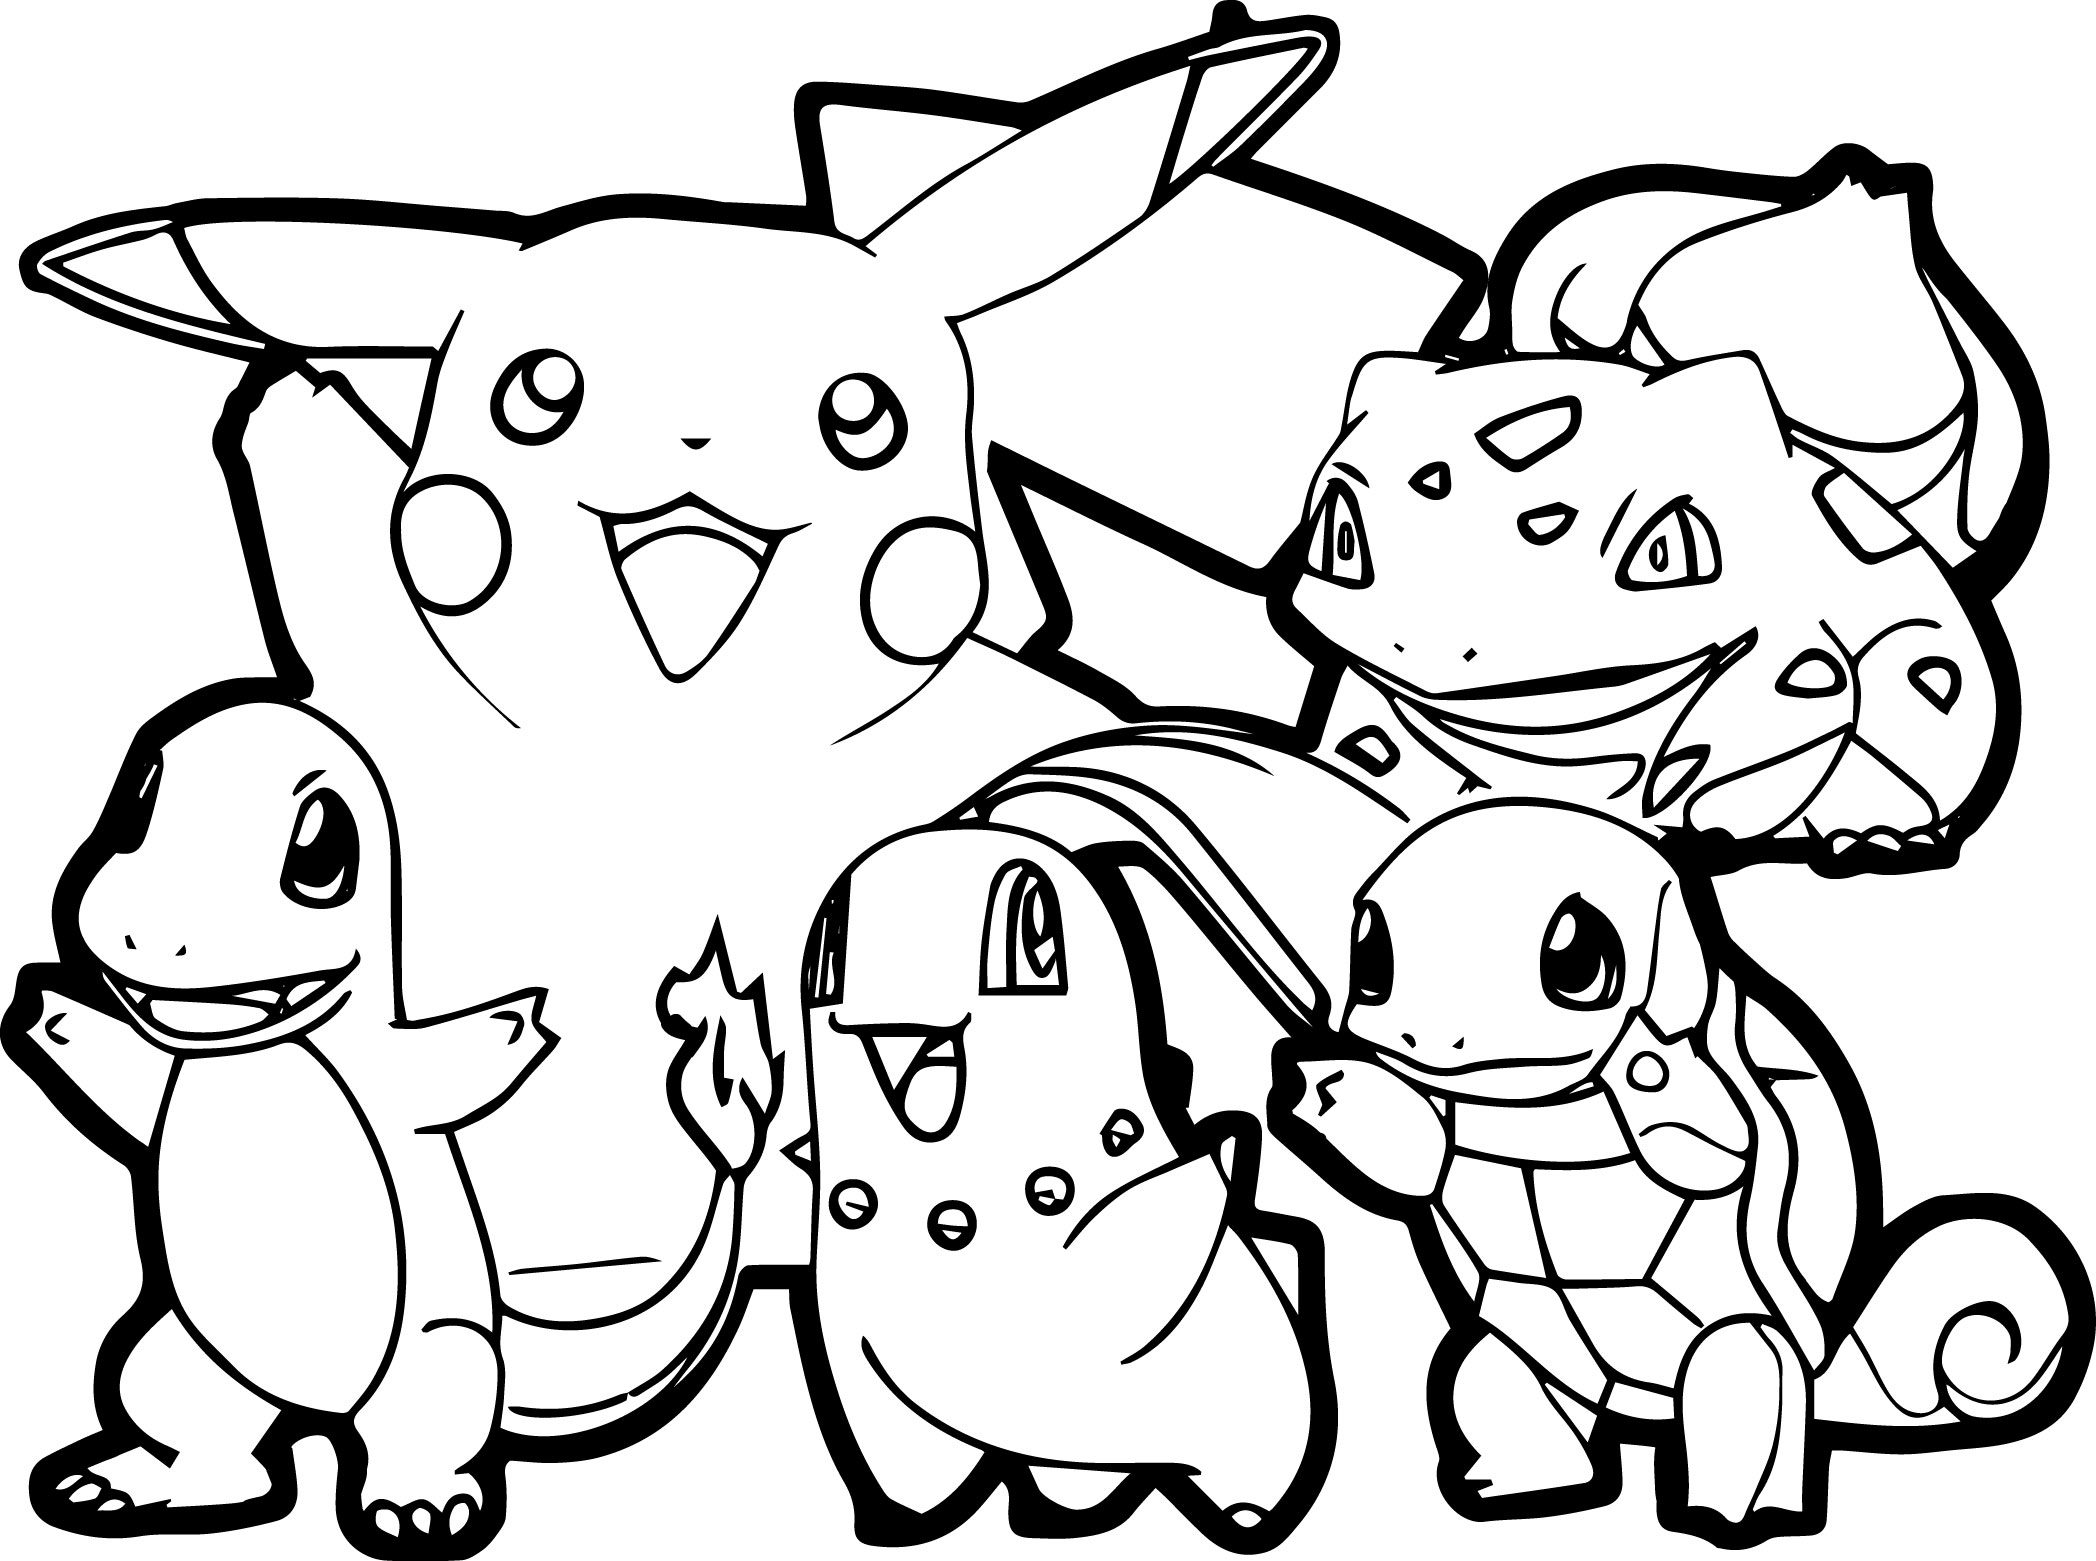 pokemon colouring in pictures pokemon to color for kids all pokemon coloring pages colouring pokemon in pictures